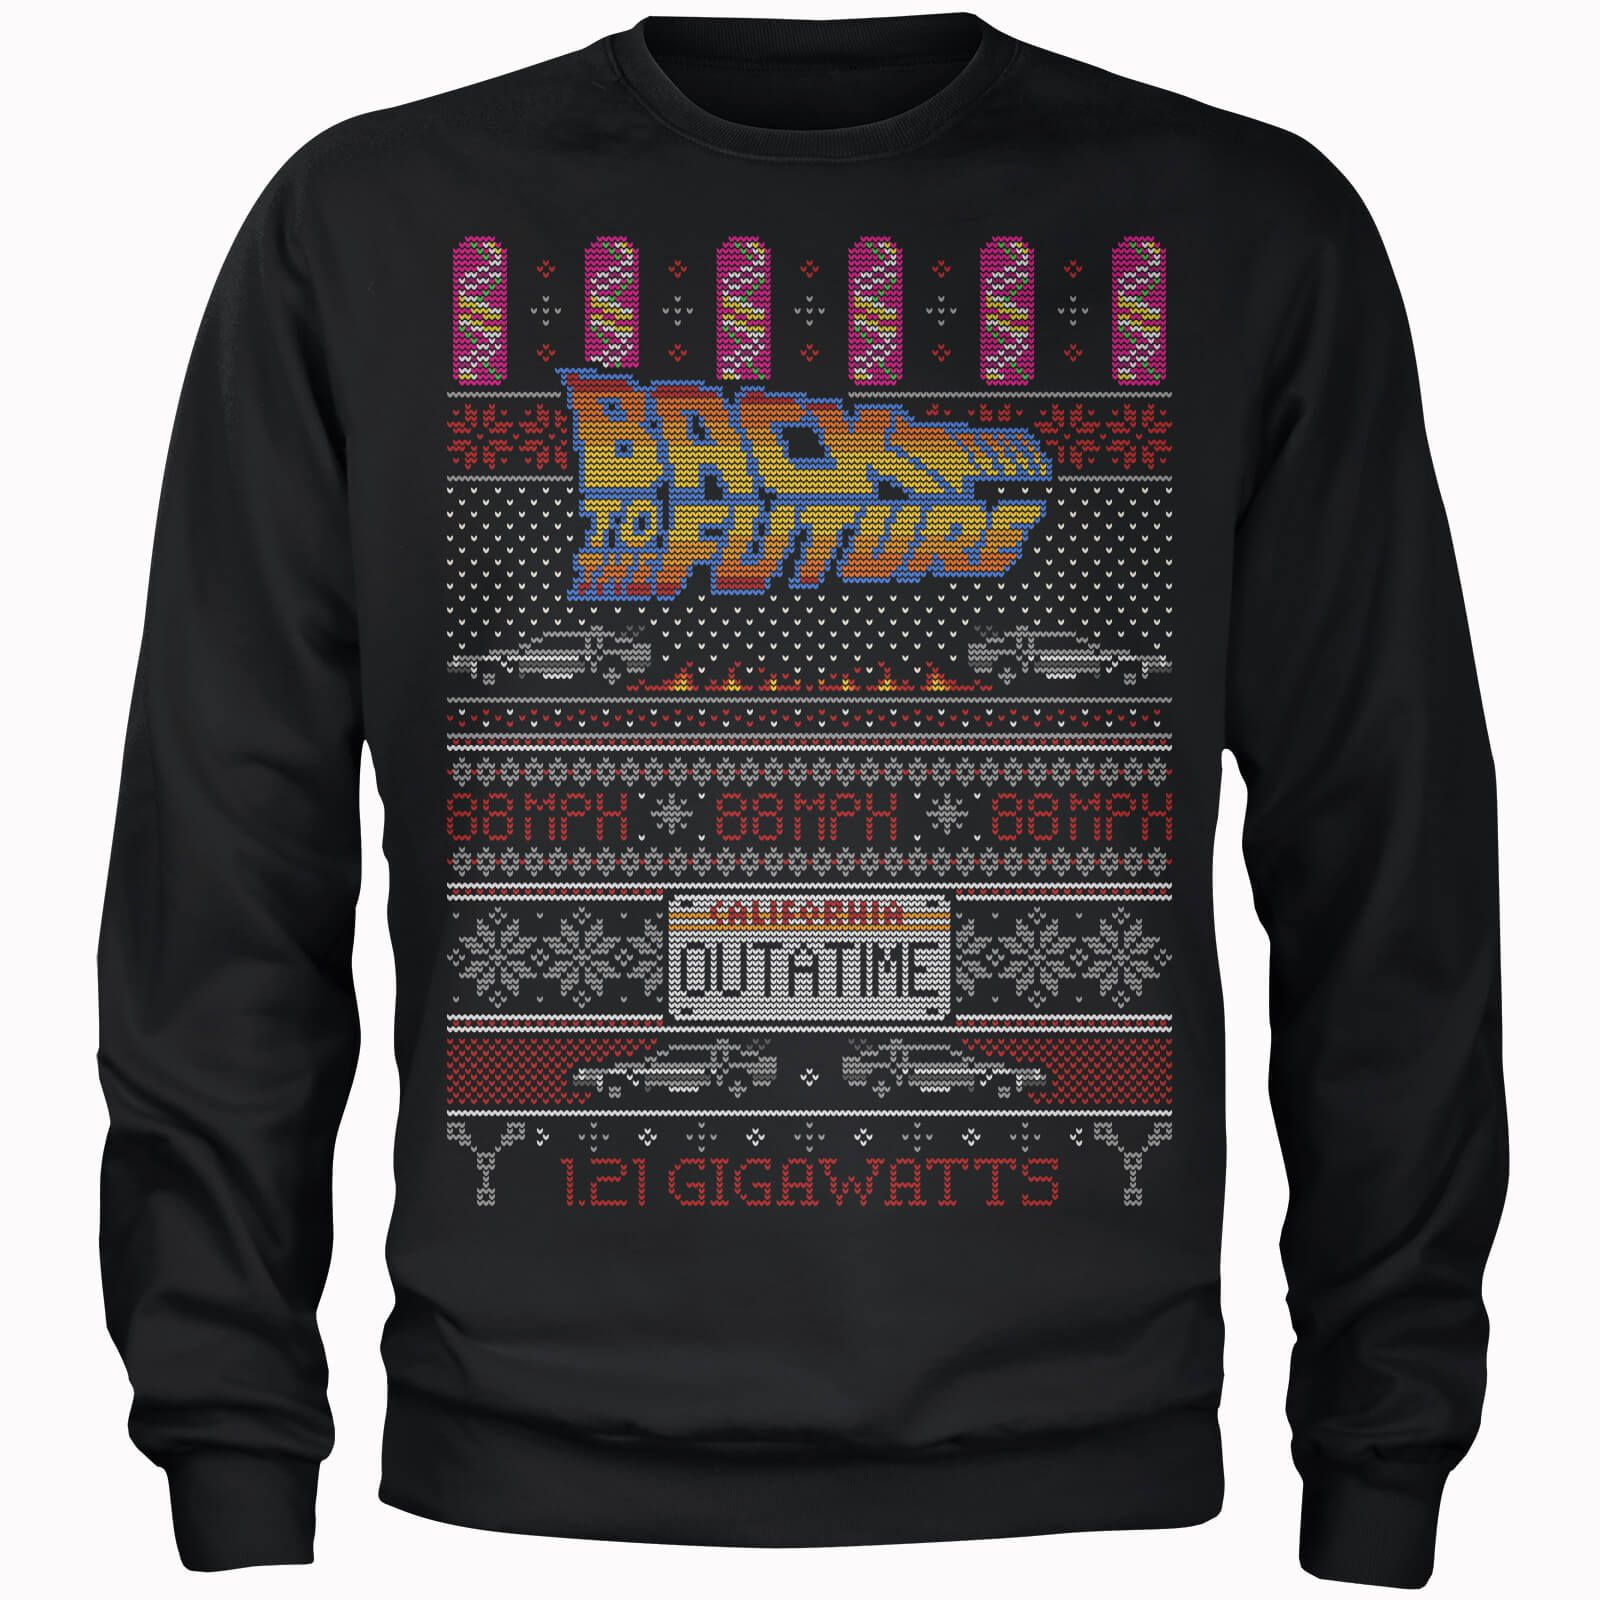 Back To The Future OUTATIME Men's Christmas Sweatshirt